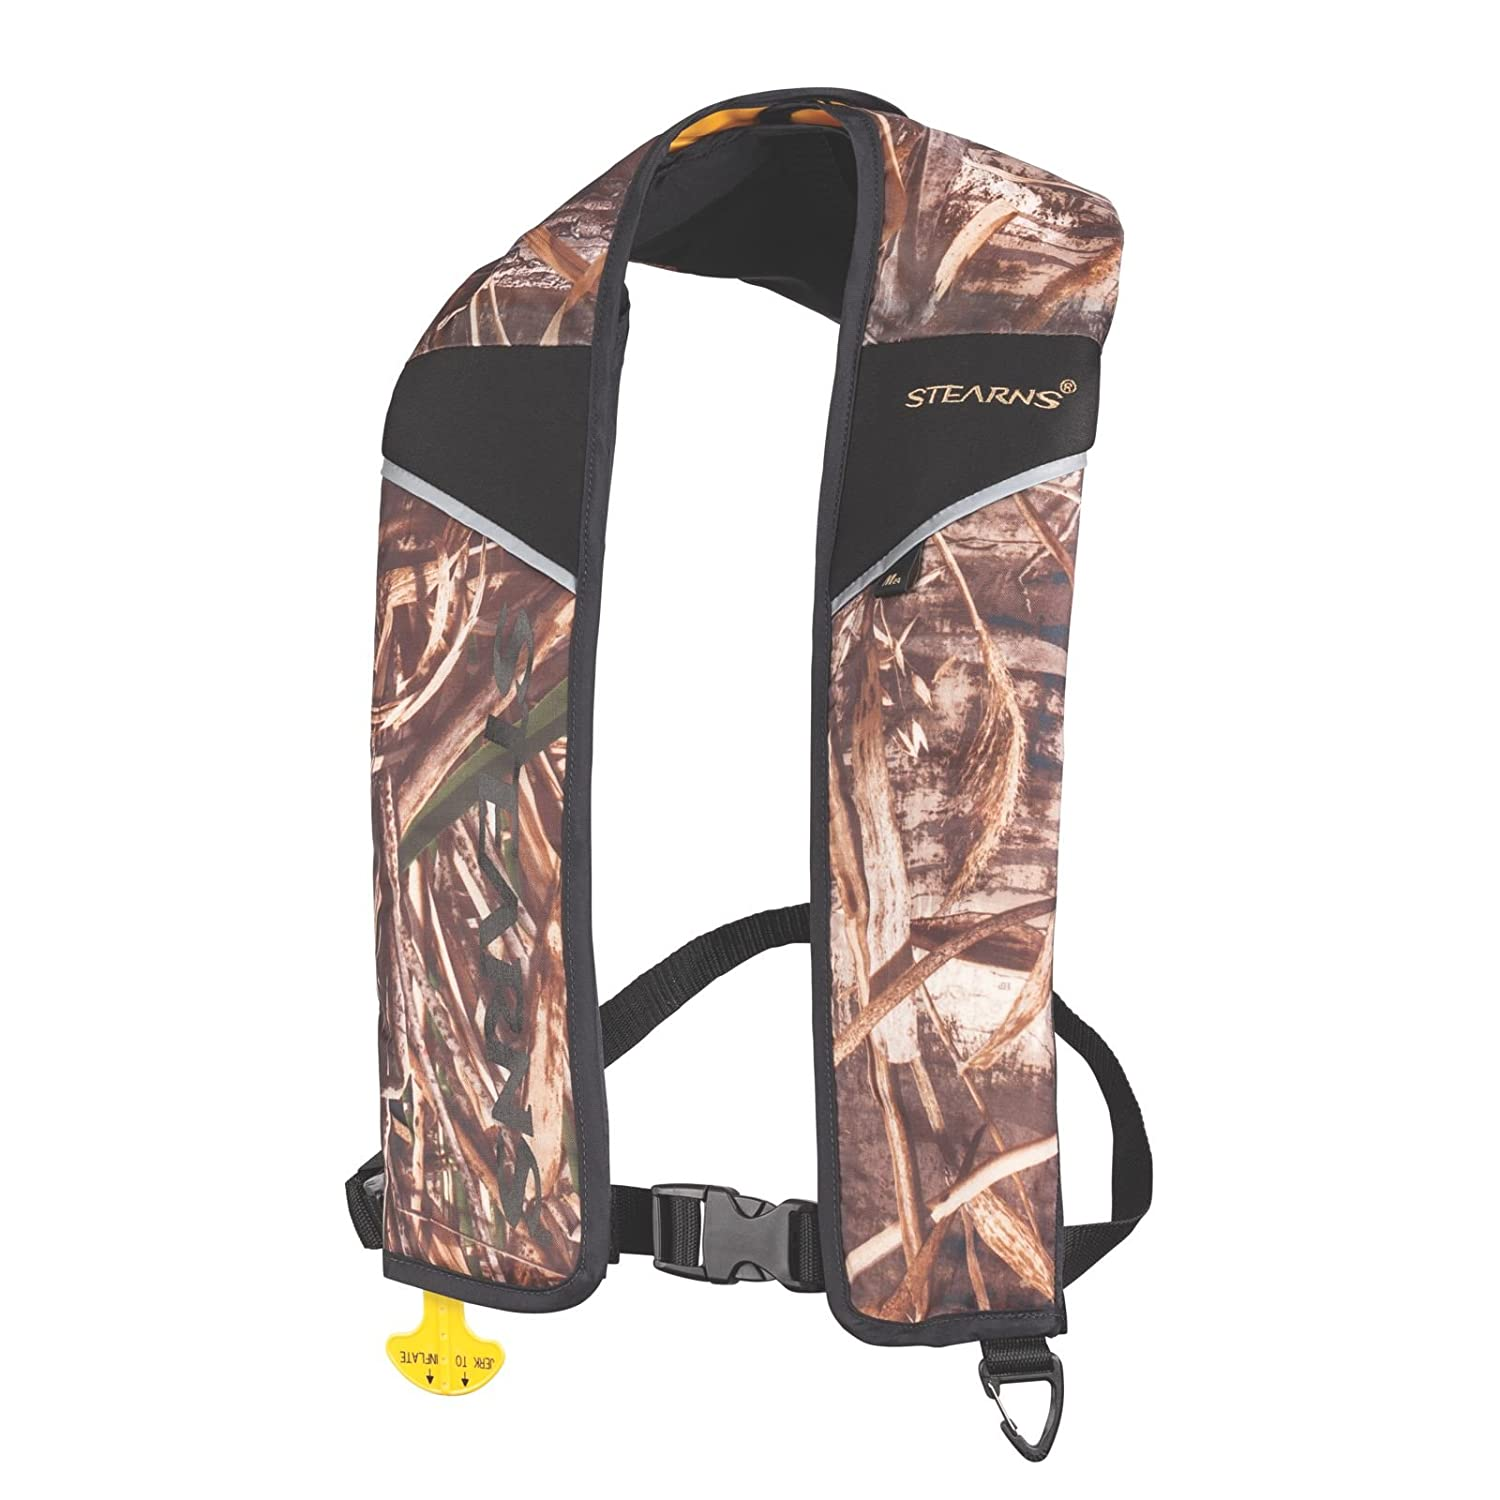 Stearns 24g Manual Life Vest, RealTree Max-4 Camo by Stearns B00W0EQRLK